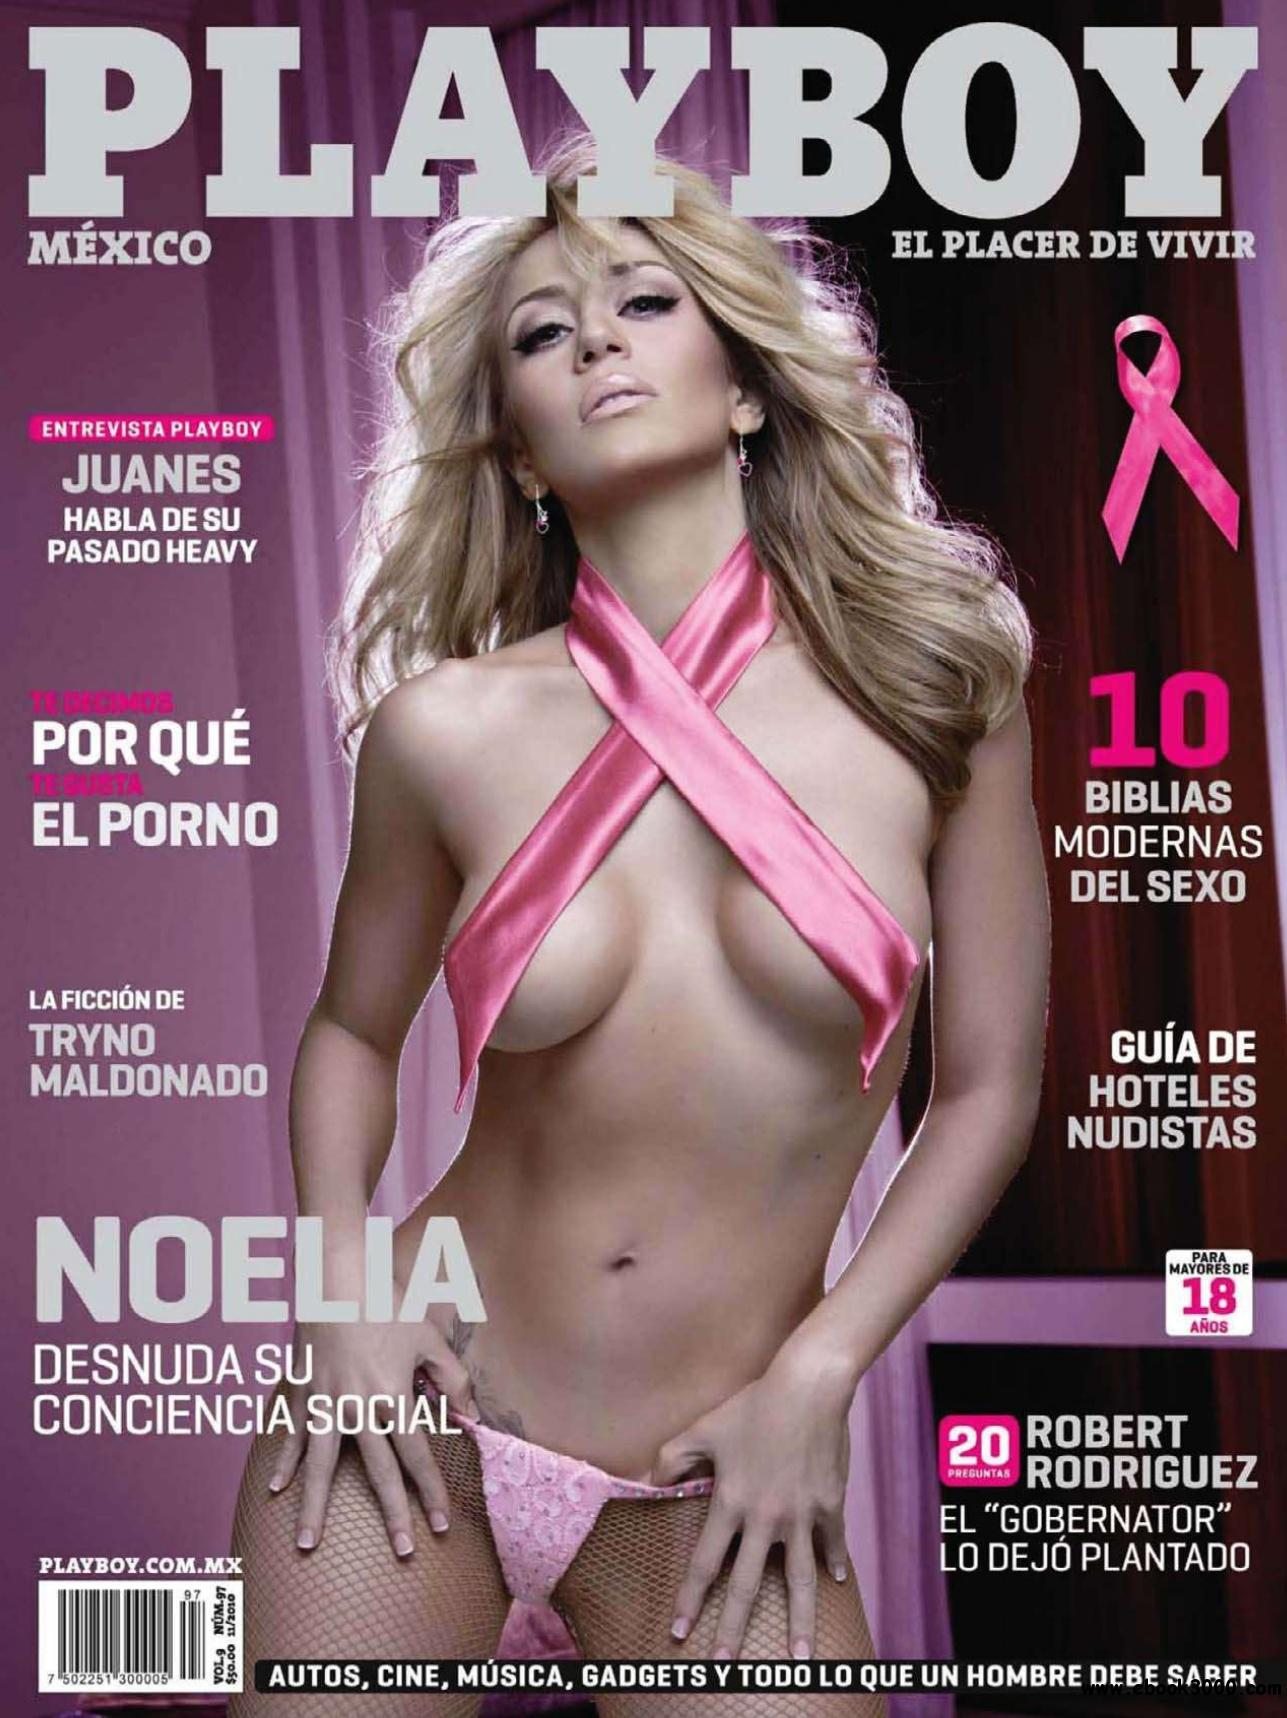 Playboy Mexico - November 2010 (Repost) free download